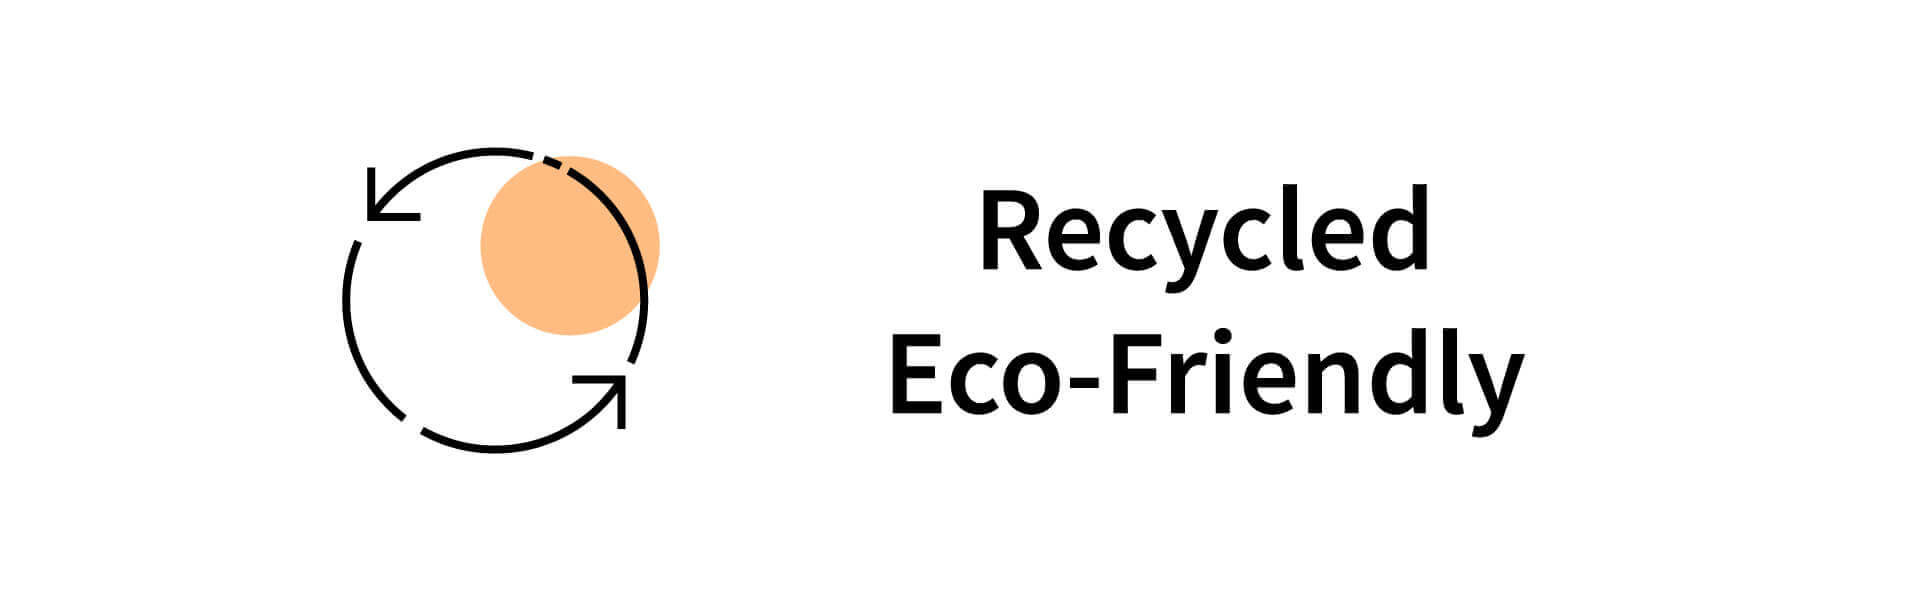 recycled-eco-friendly